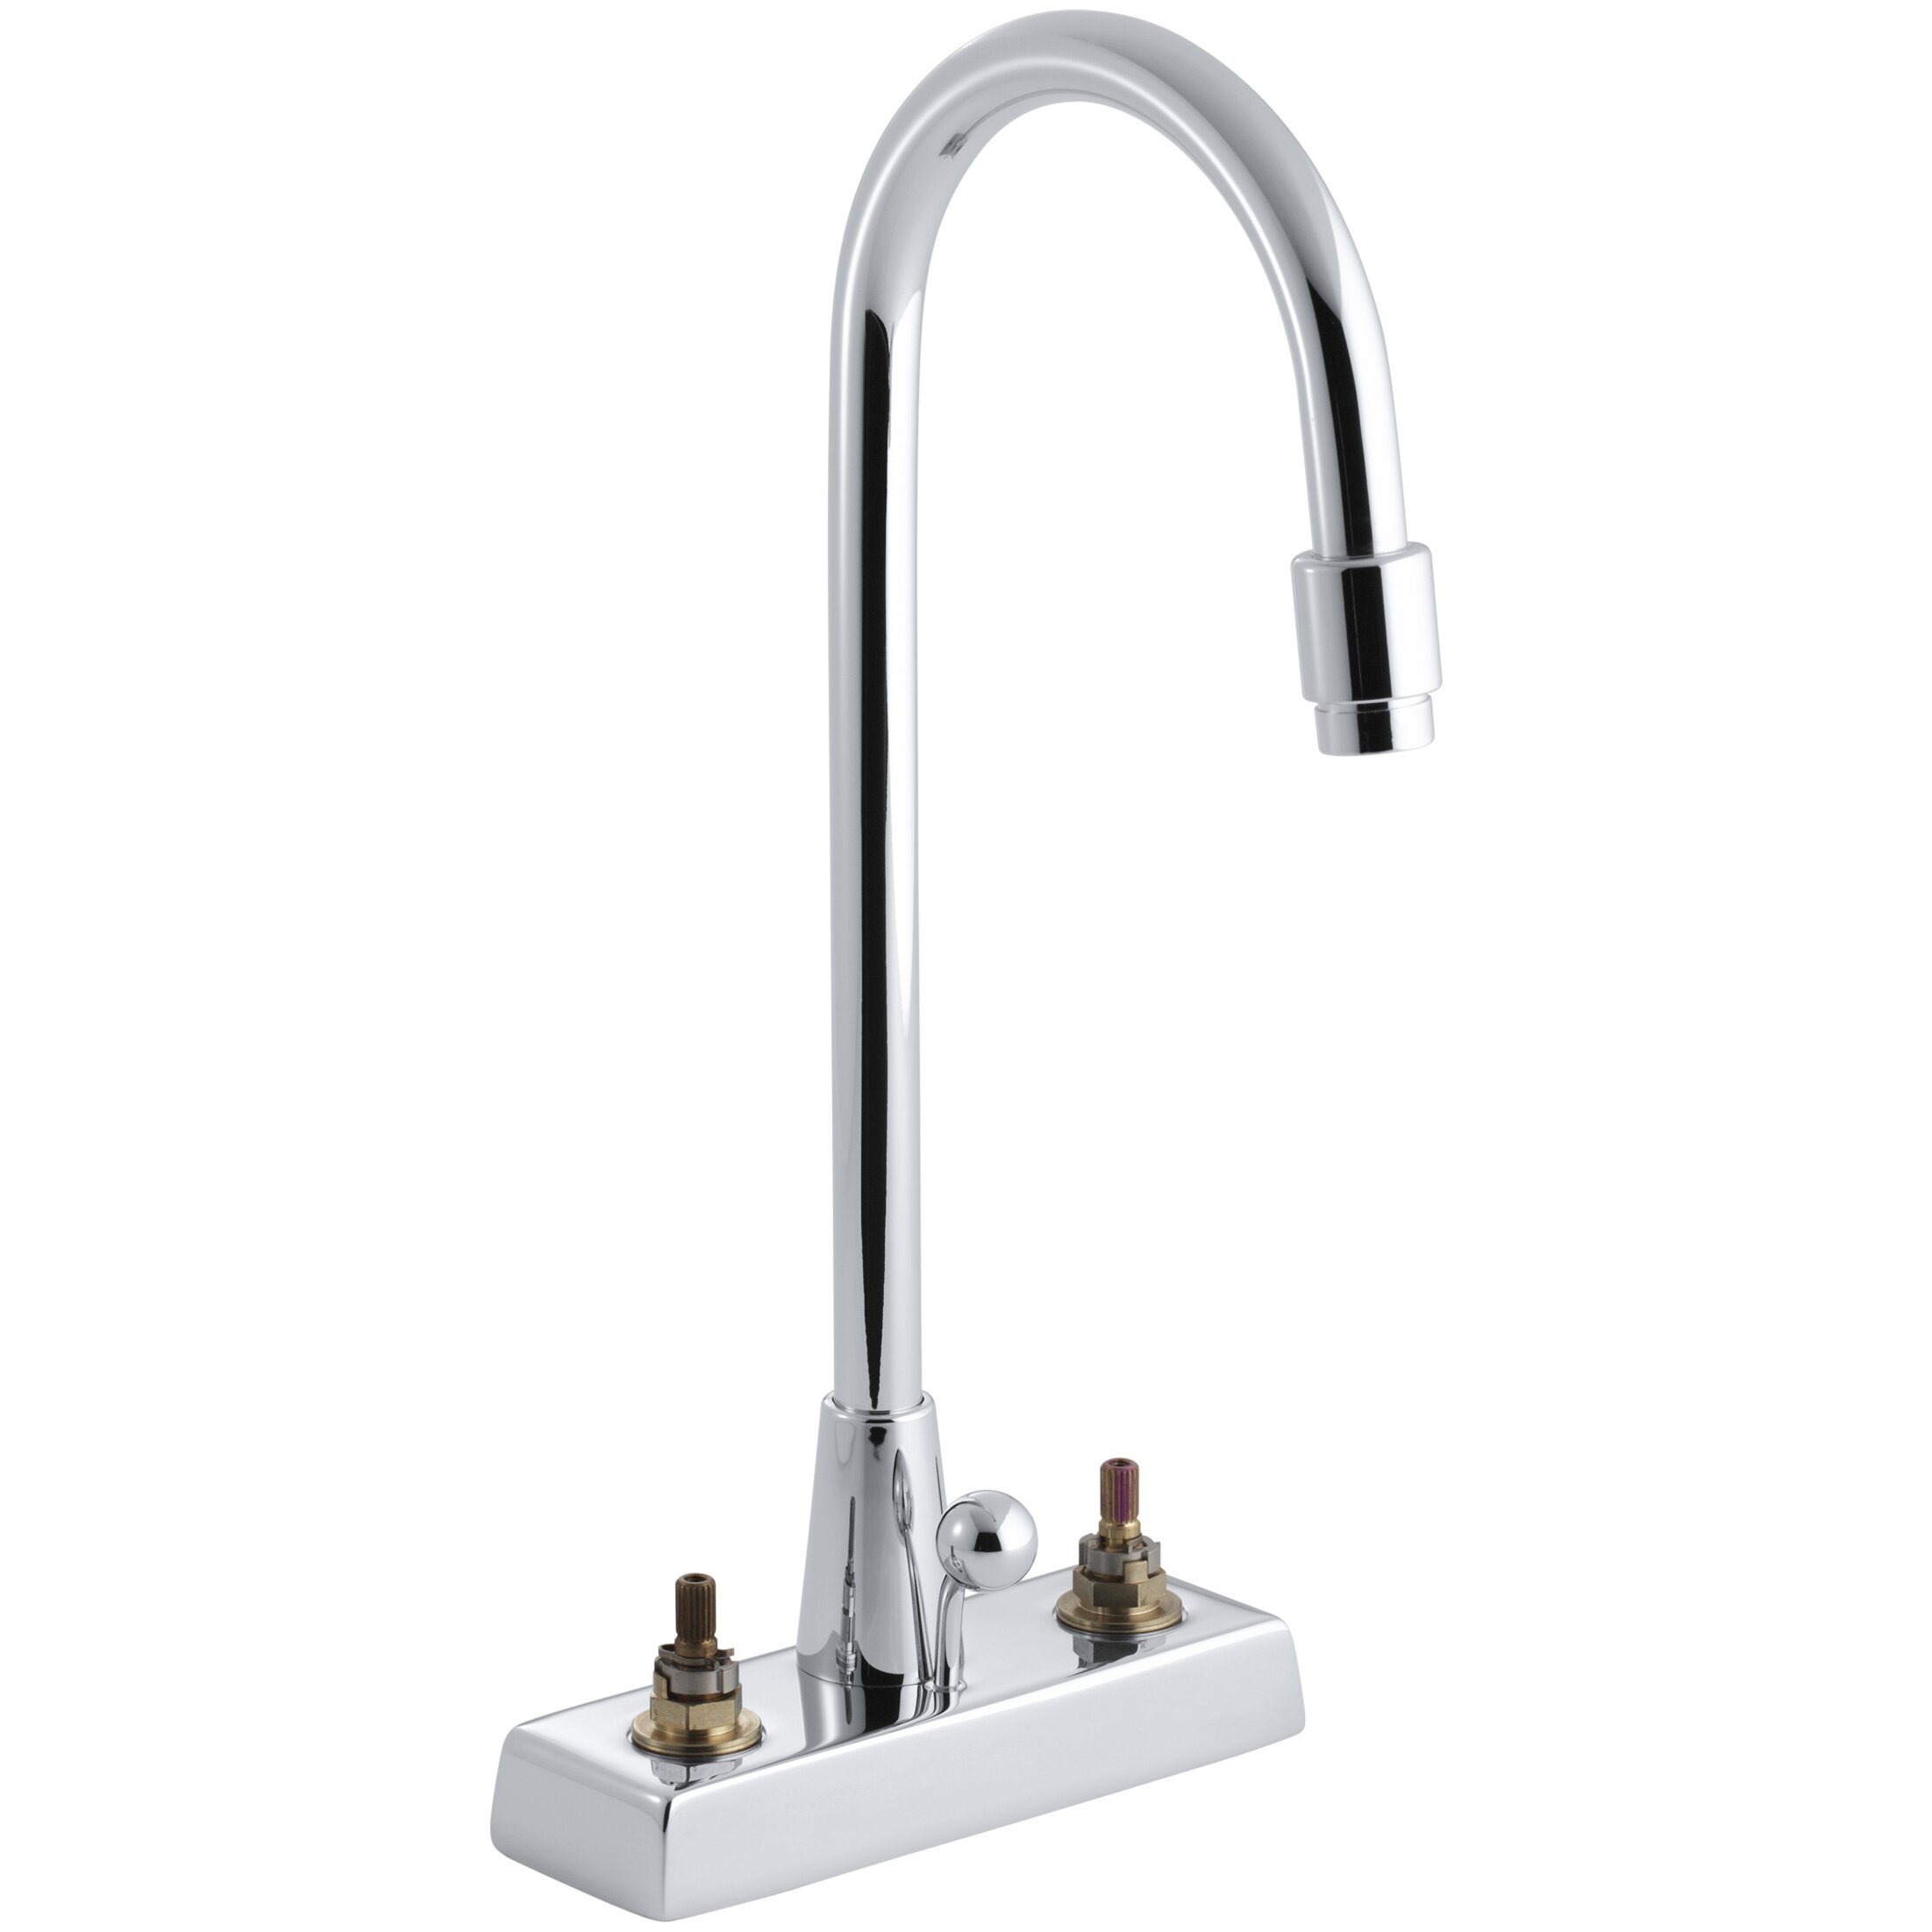 Kohler Triton Centerset Commercial Bathroom Sink Faucet With Gooseneck Spout And Pop Up Drain